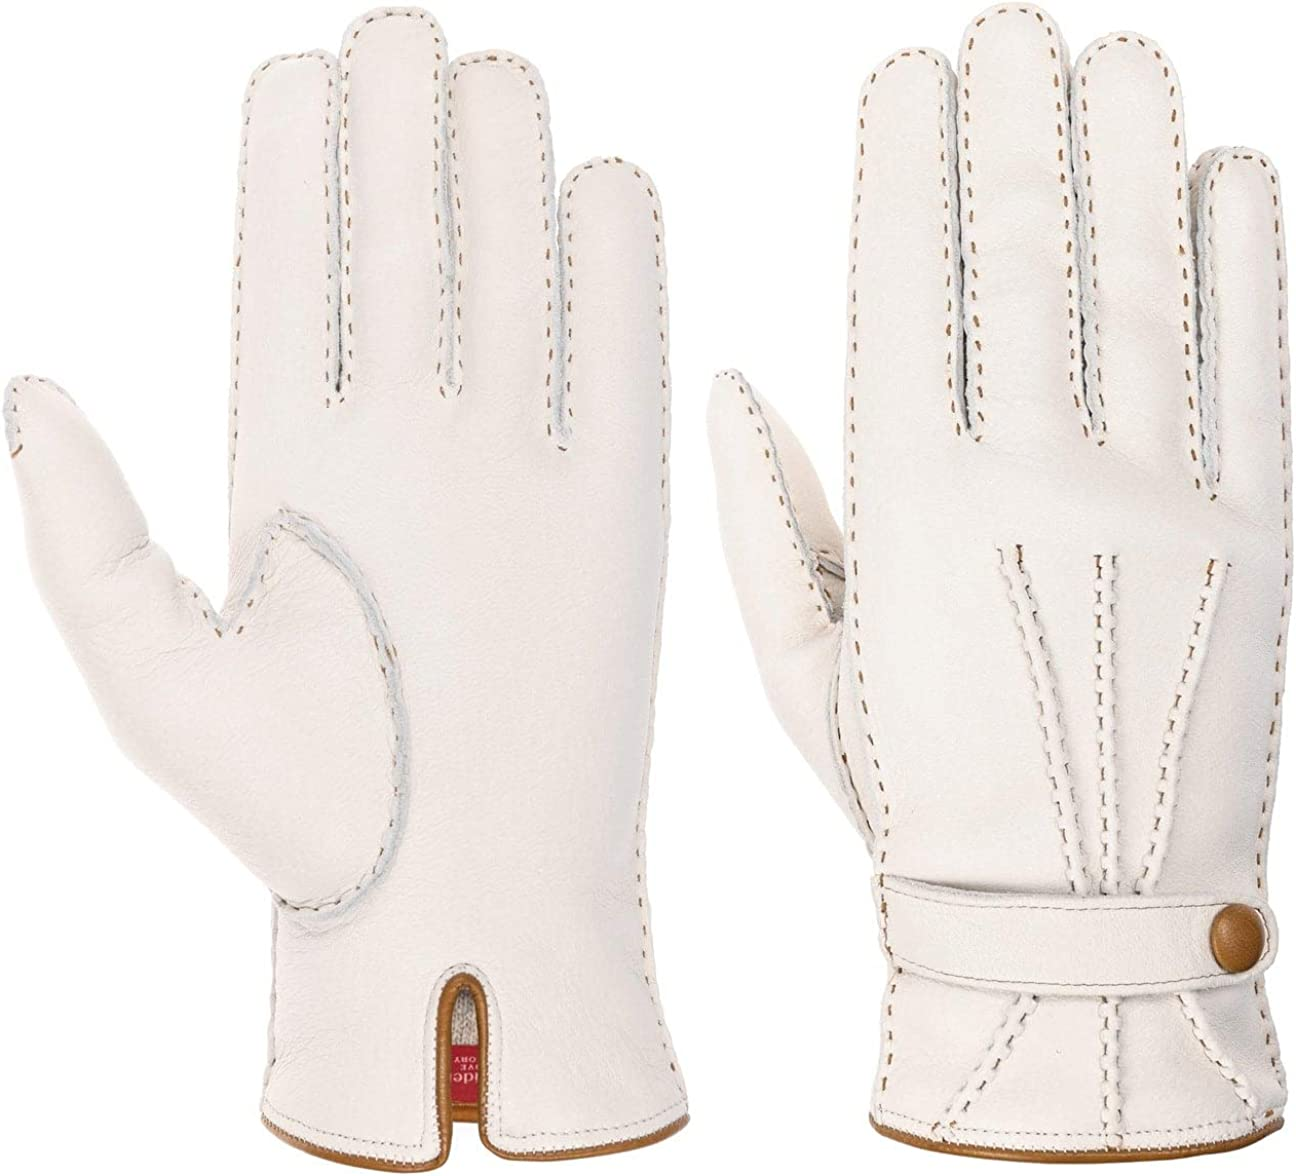 Caridei Leather Gloves with Cashmere Lining Women - Made in Italy